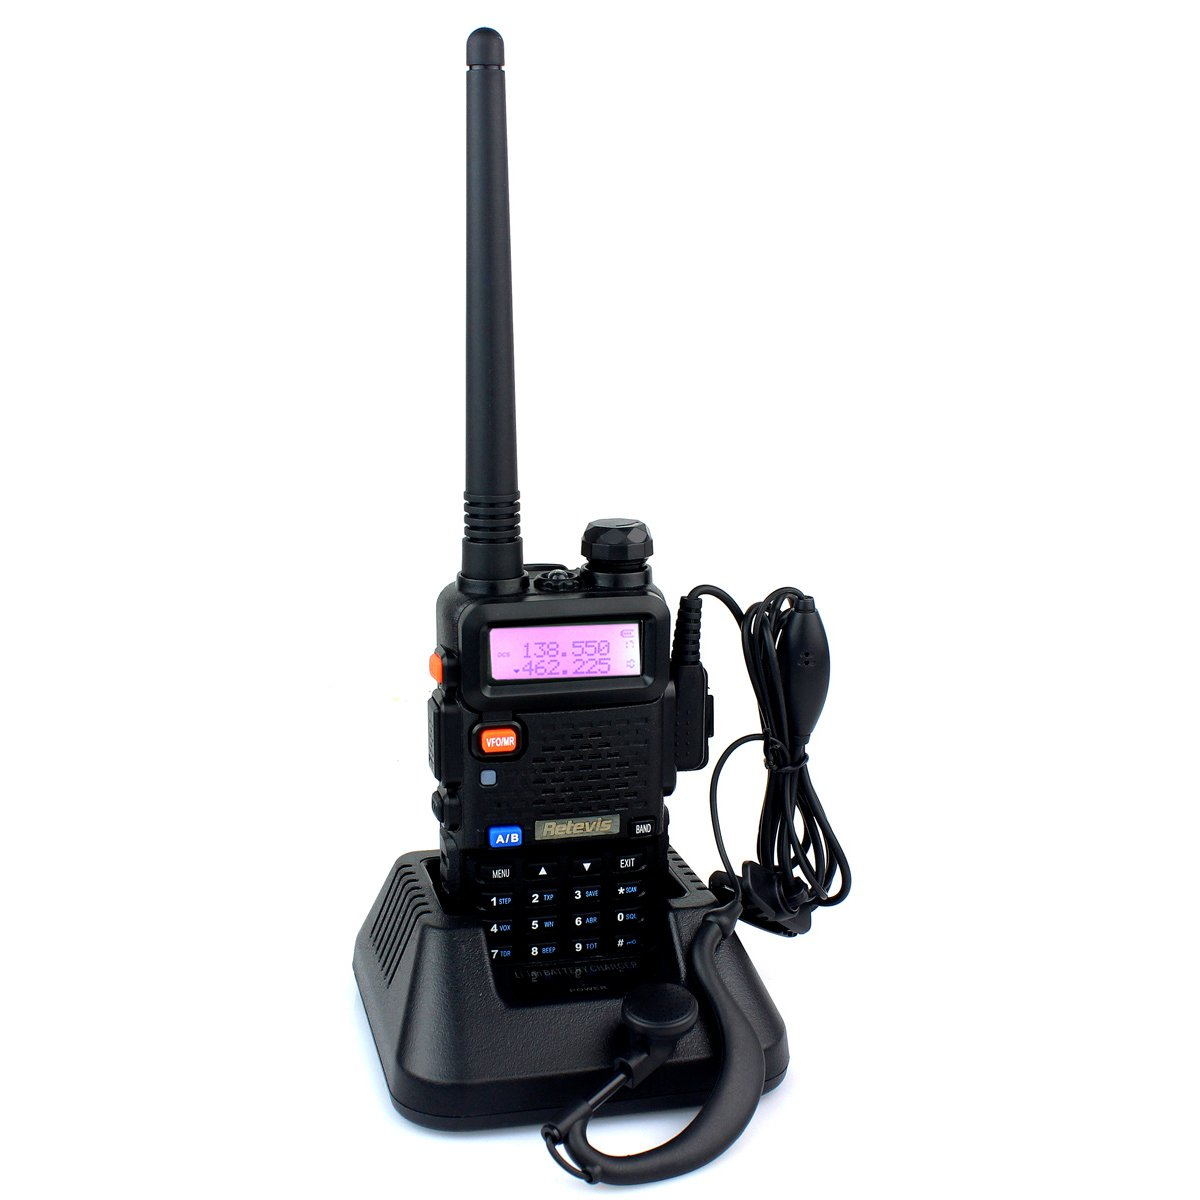 Retevis RT-5R 2 Way Radio 5W 128CH UHF/VHF 400-520MHz/136-174MHZ Walkie Talkies (6 Pack) and Programming Cable by Retevis (Image #2)